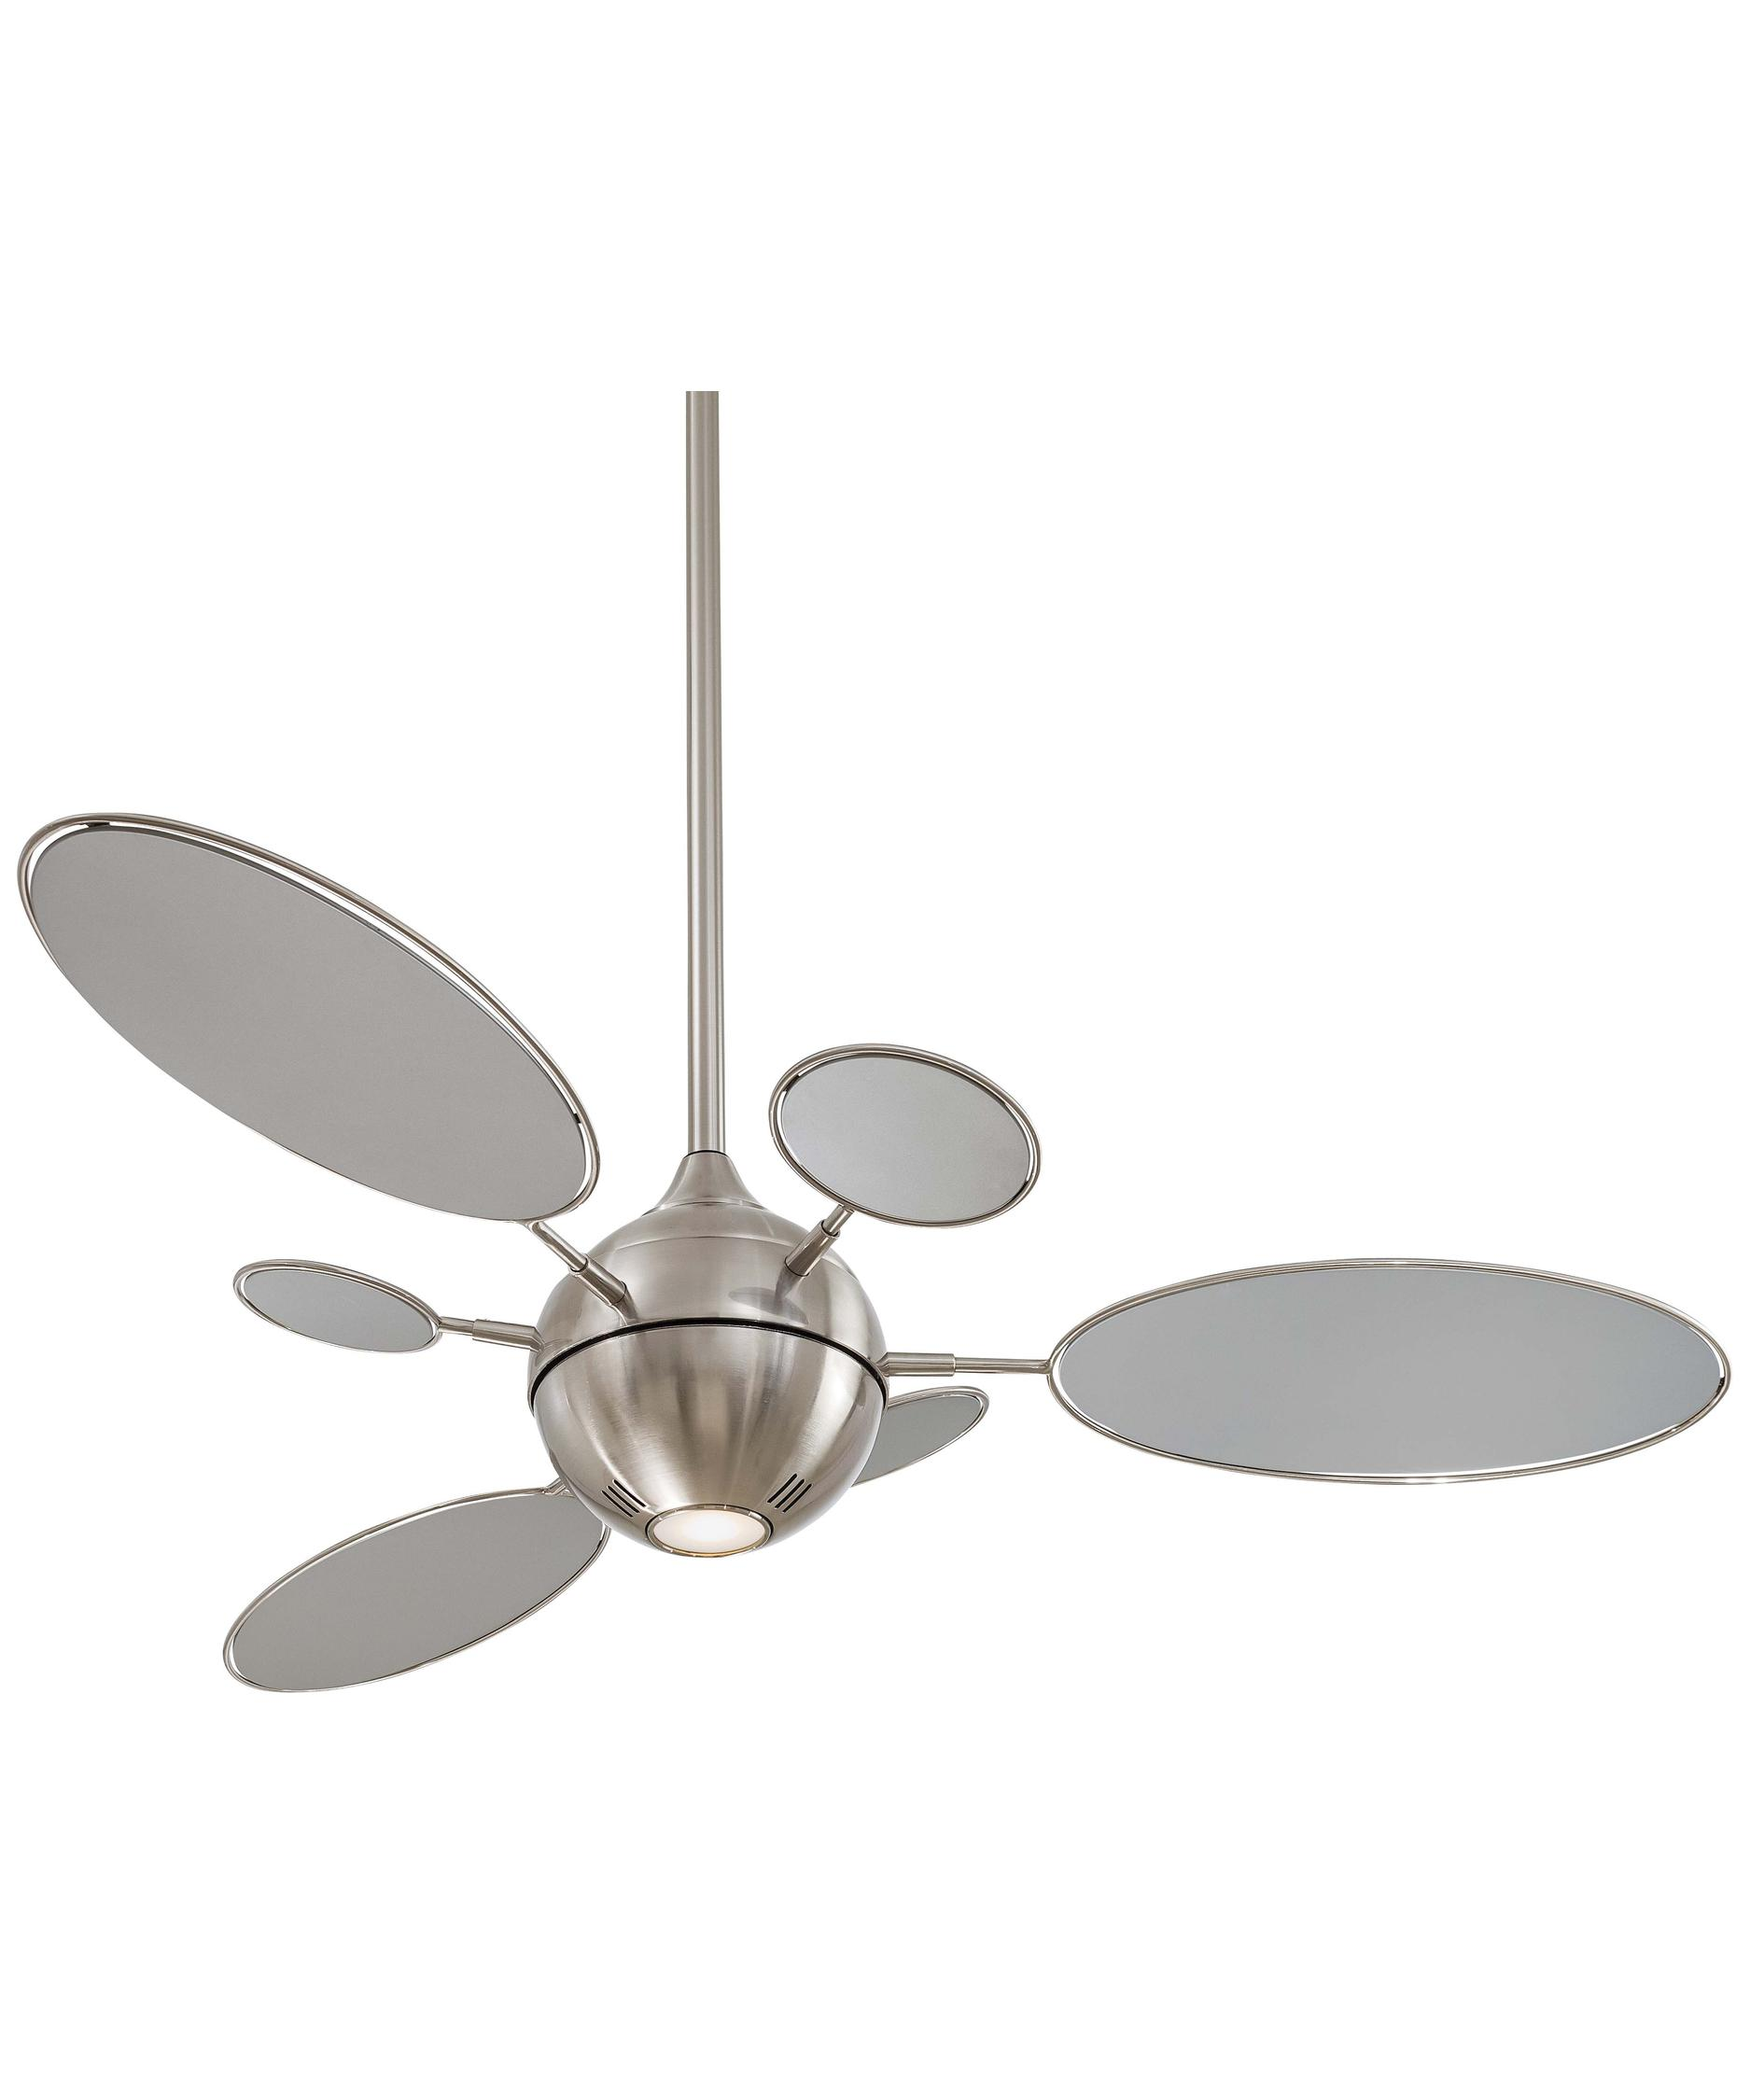 shown in brushed nickel finish - Minka Aire Fans